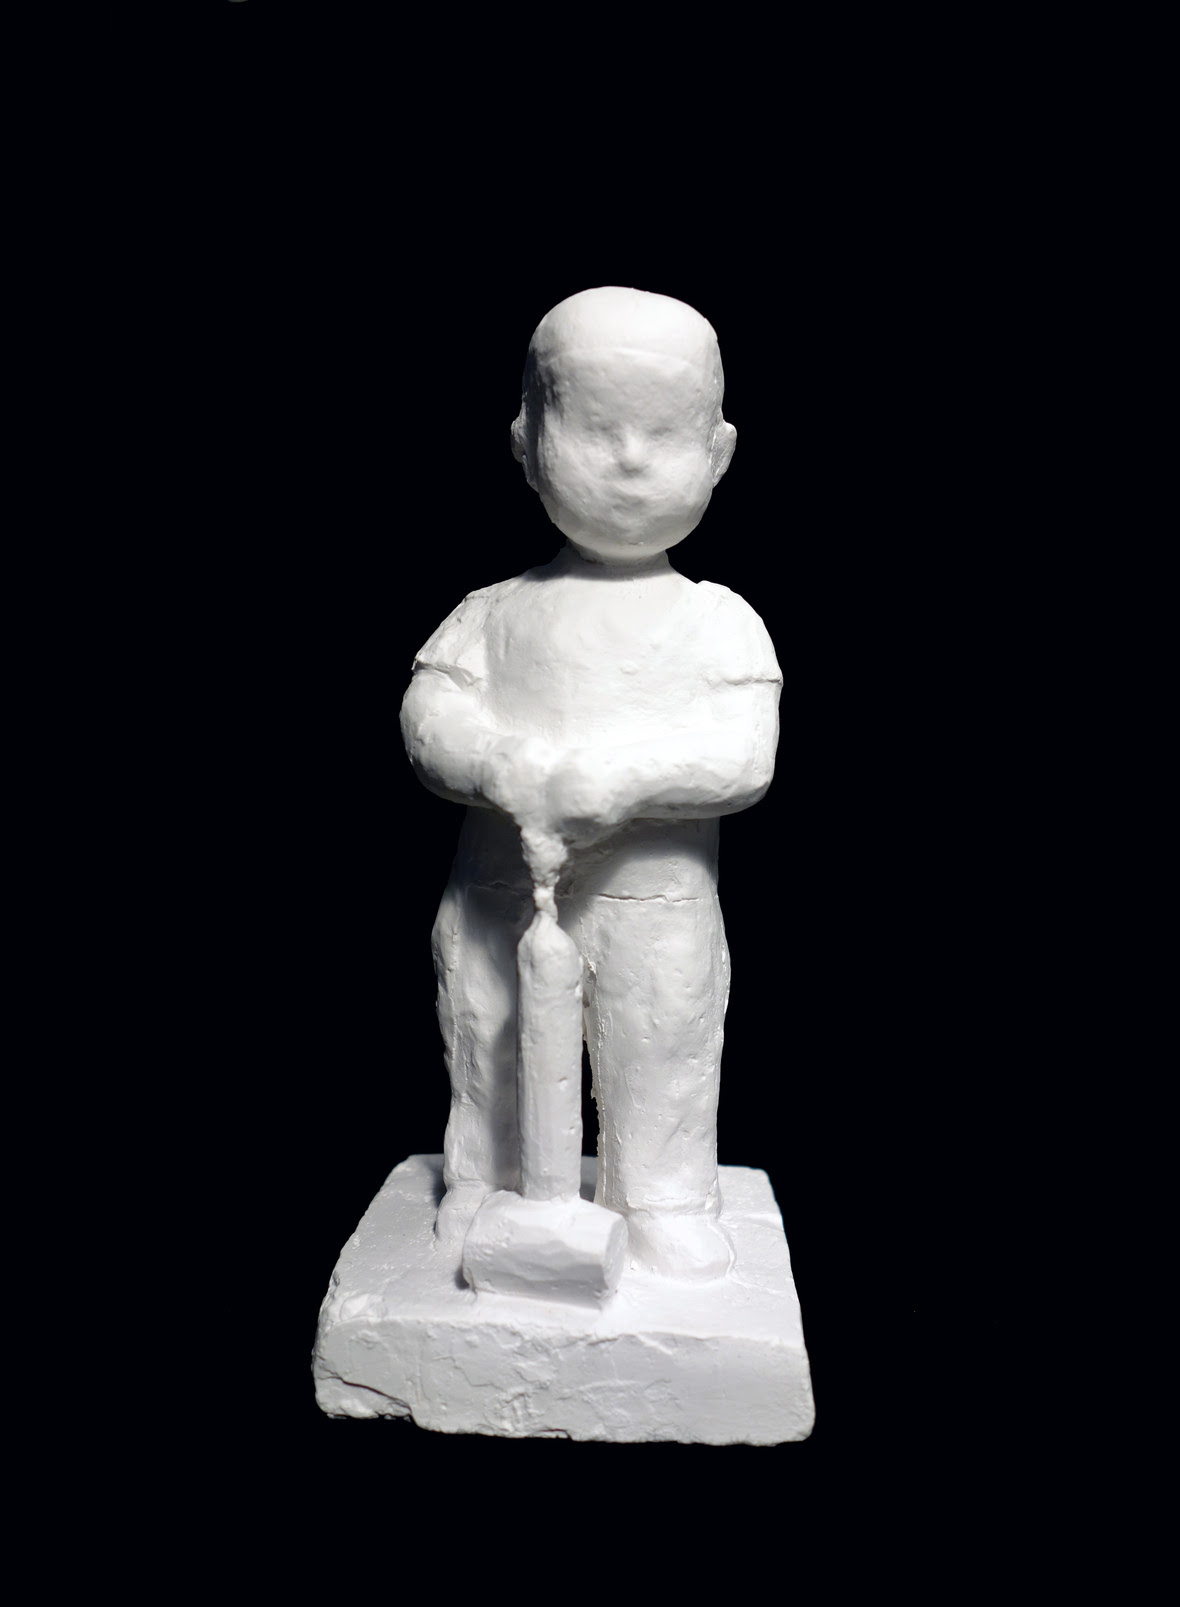 """Astrid Noack """"Boy with insect sprayer"""" (Gypsum, 15cm, original was from 1938). This new-casting from 2015 comes in 25 numbered copies. Produced to raise supporting funds for A.N.A. Courtesy of Nina J Gallery, Copenhagen. Photo by THE WINTER OFFICE, 2019."""